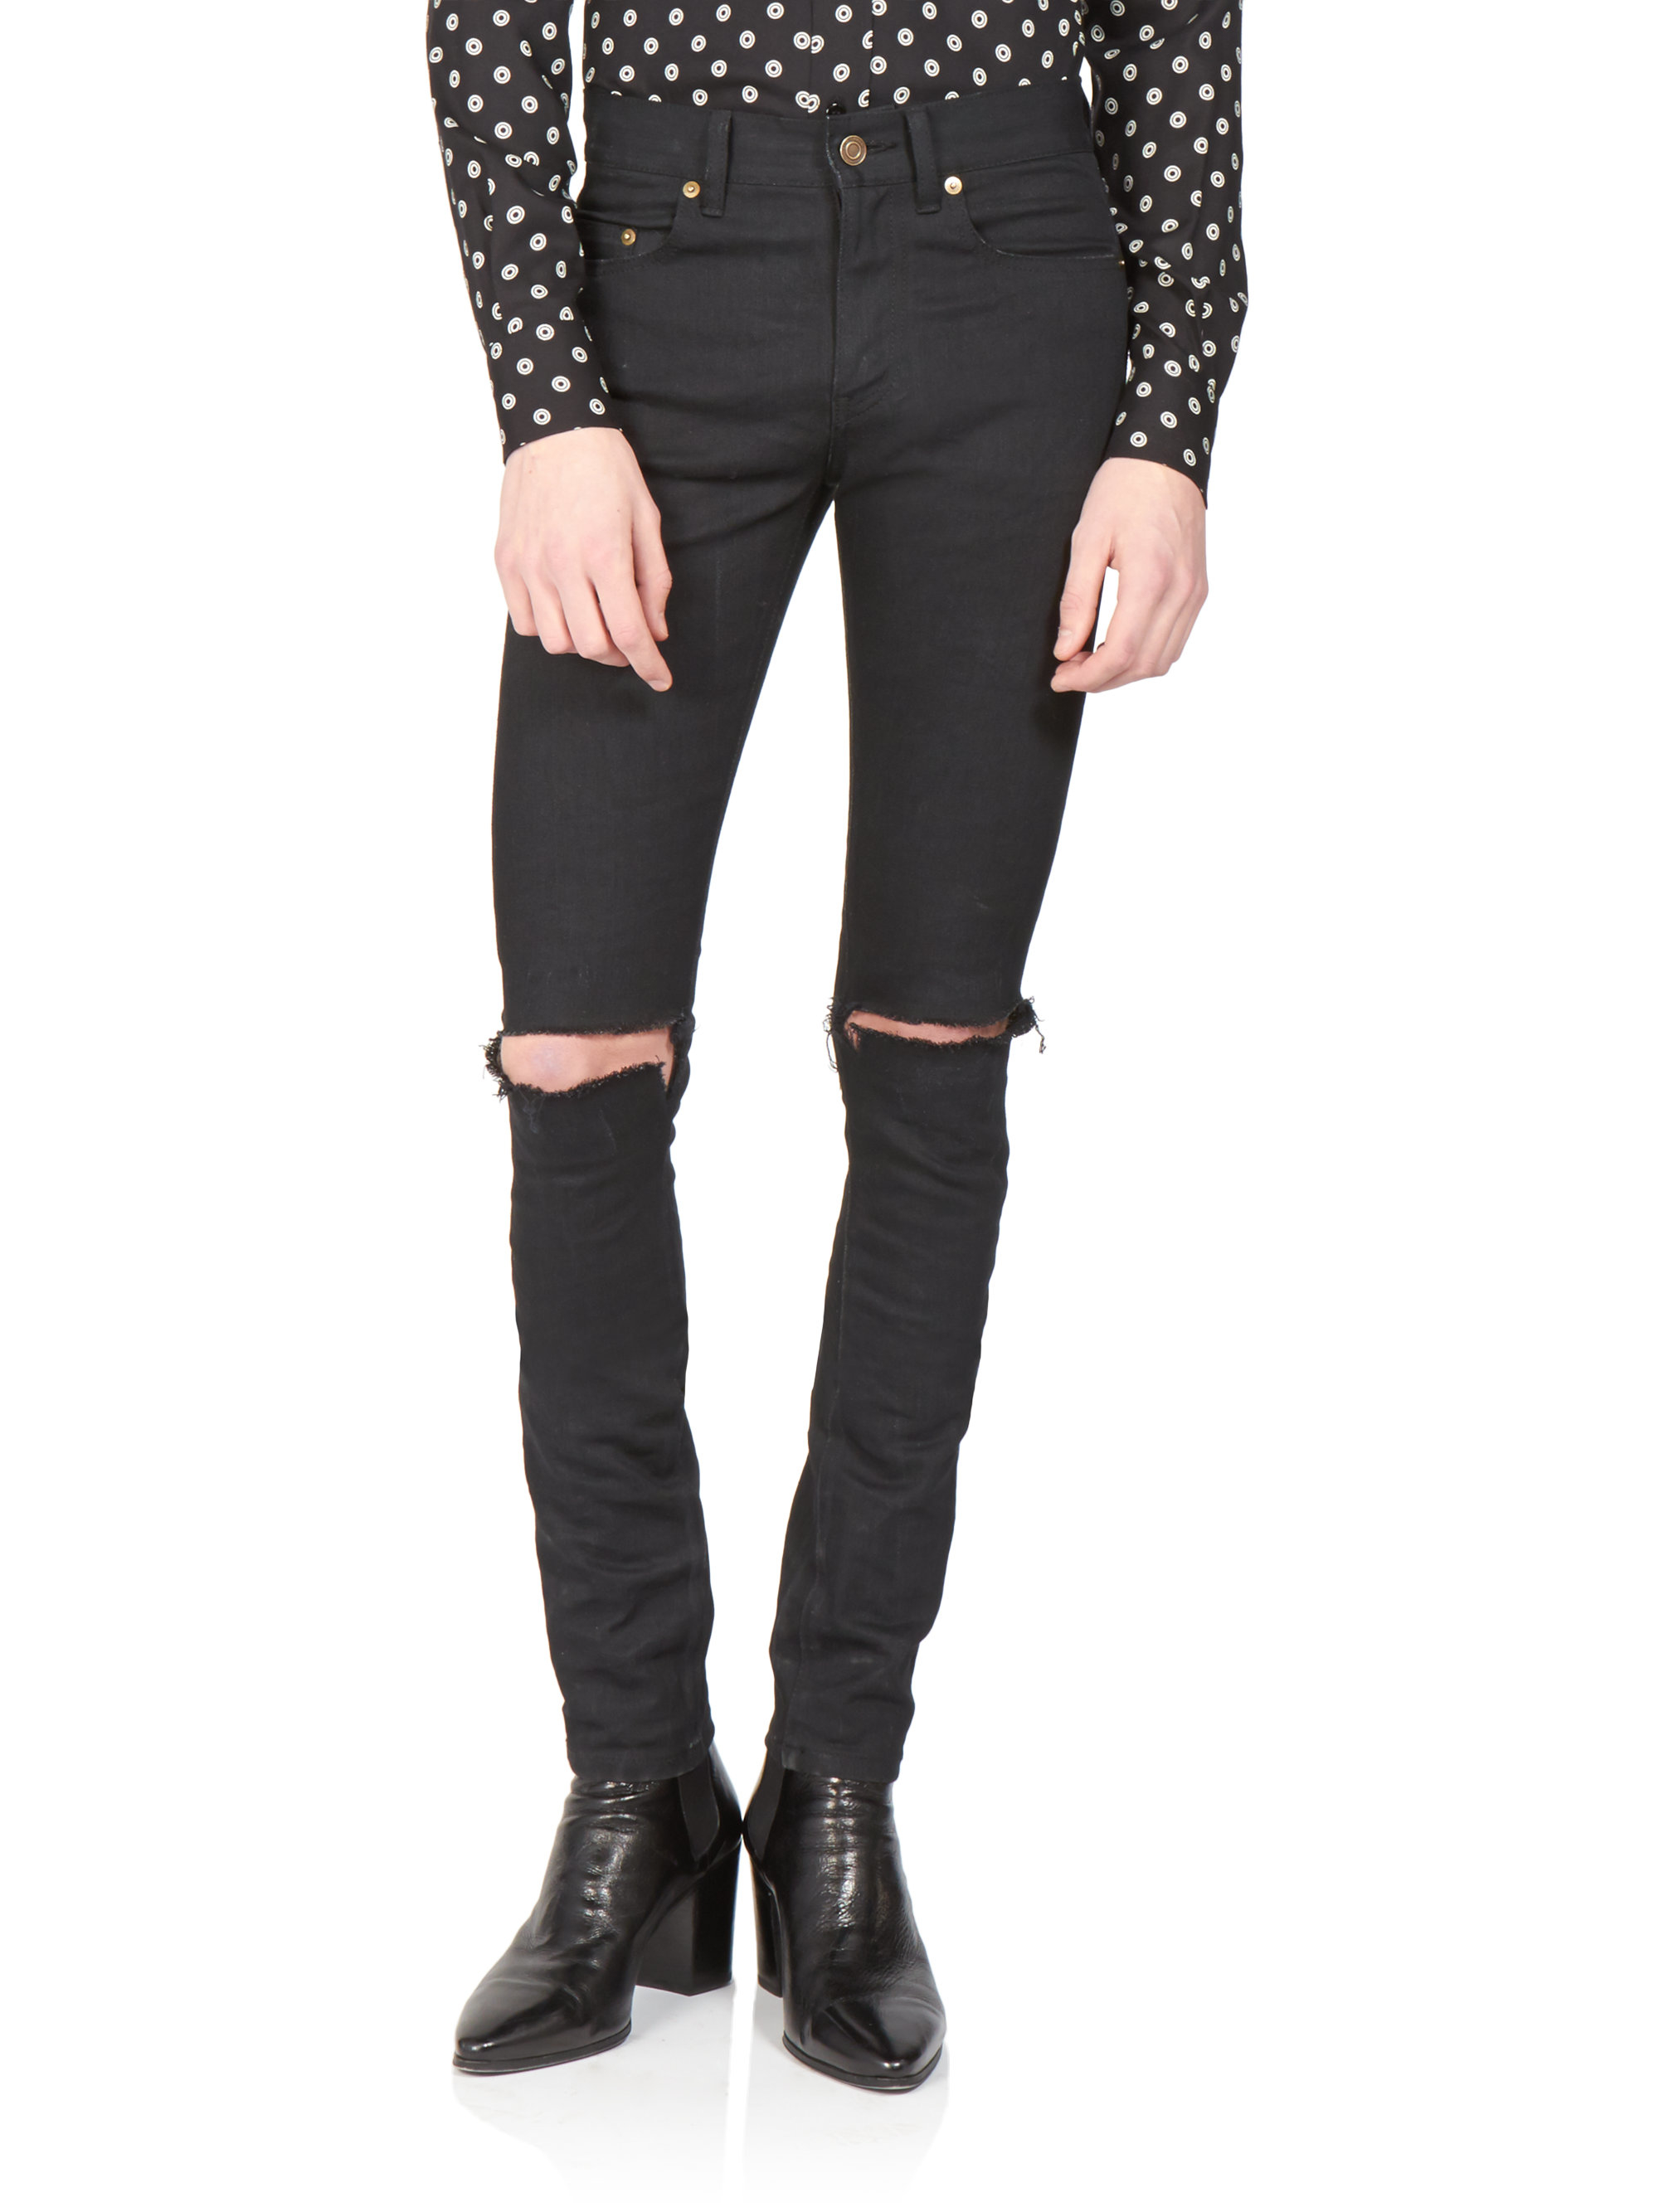 lyst saint laurent skinny distressed jeans in black for men. Black Bedroom Furniture Sets. Home Design Ideas